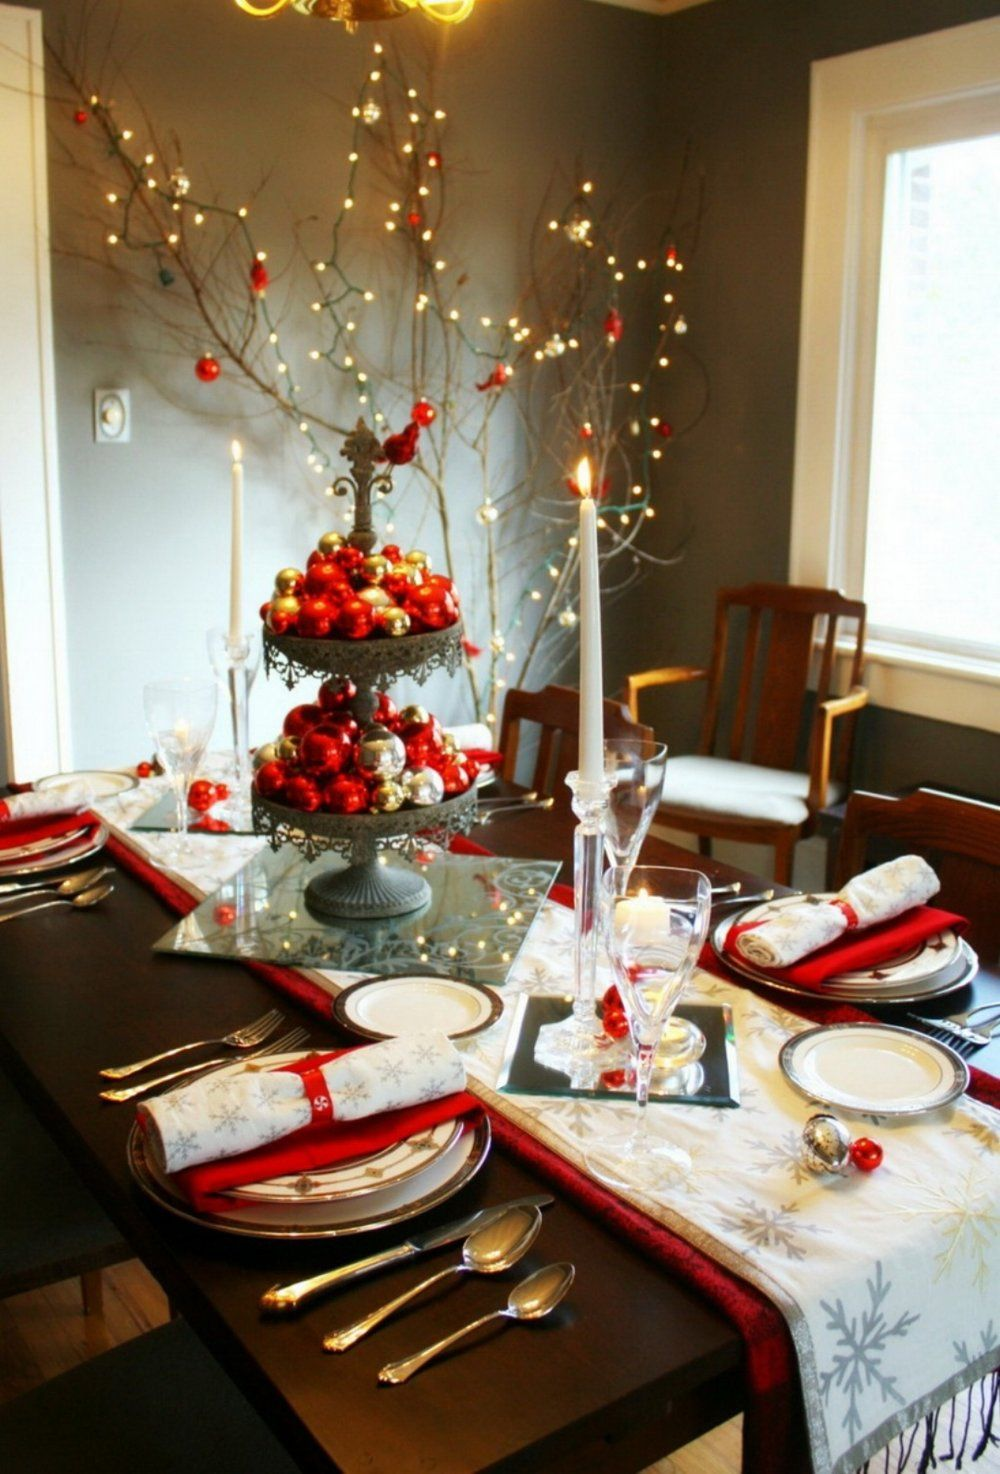 Christmas Table Setting Ideas Uk.Luxurious Christmas Table Decorations Ideas Uk Holiday